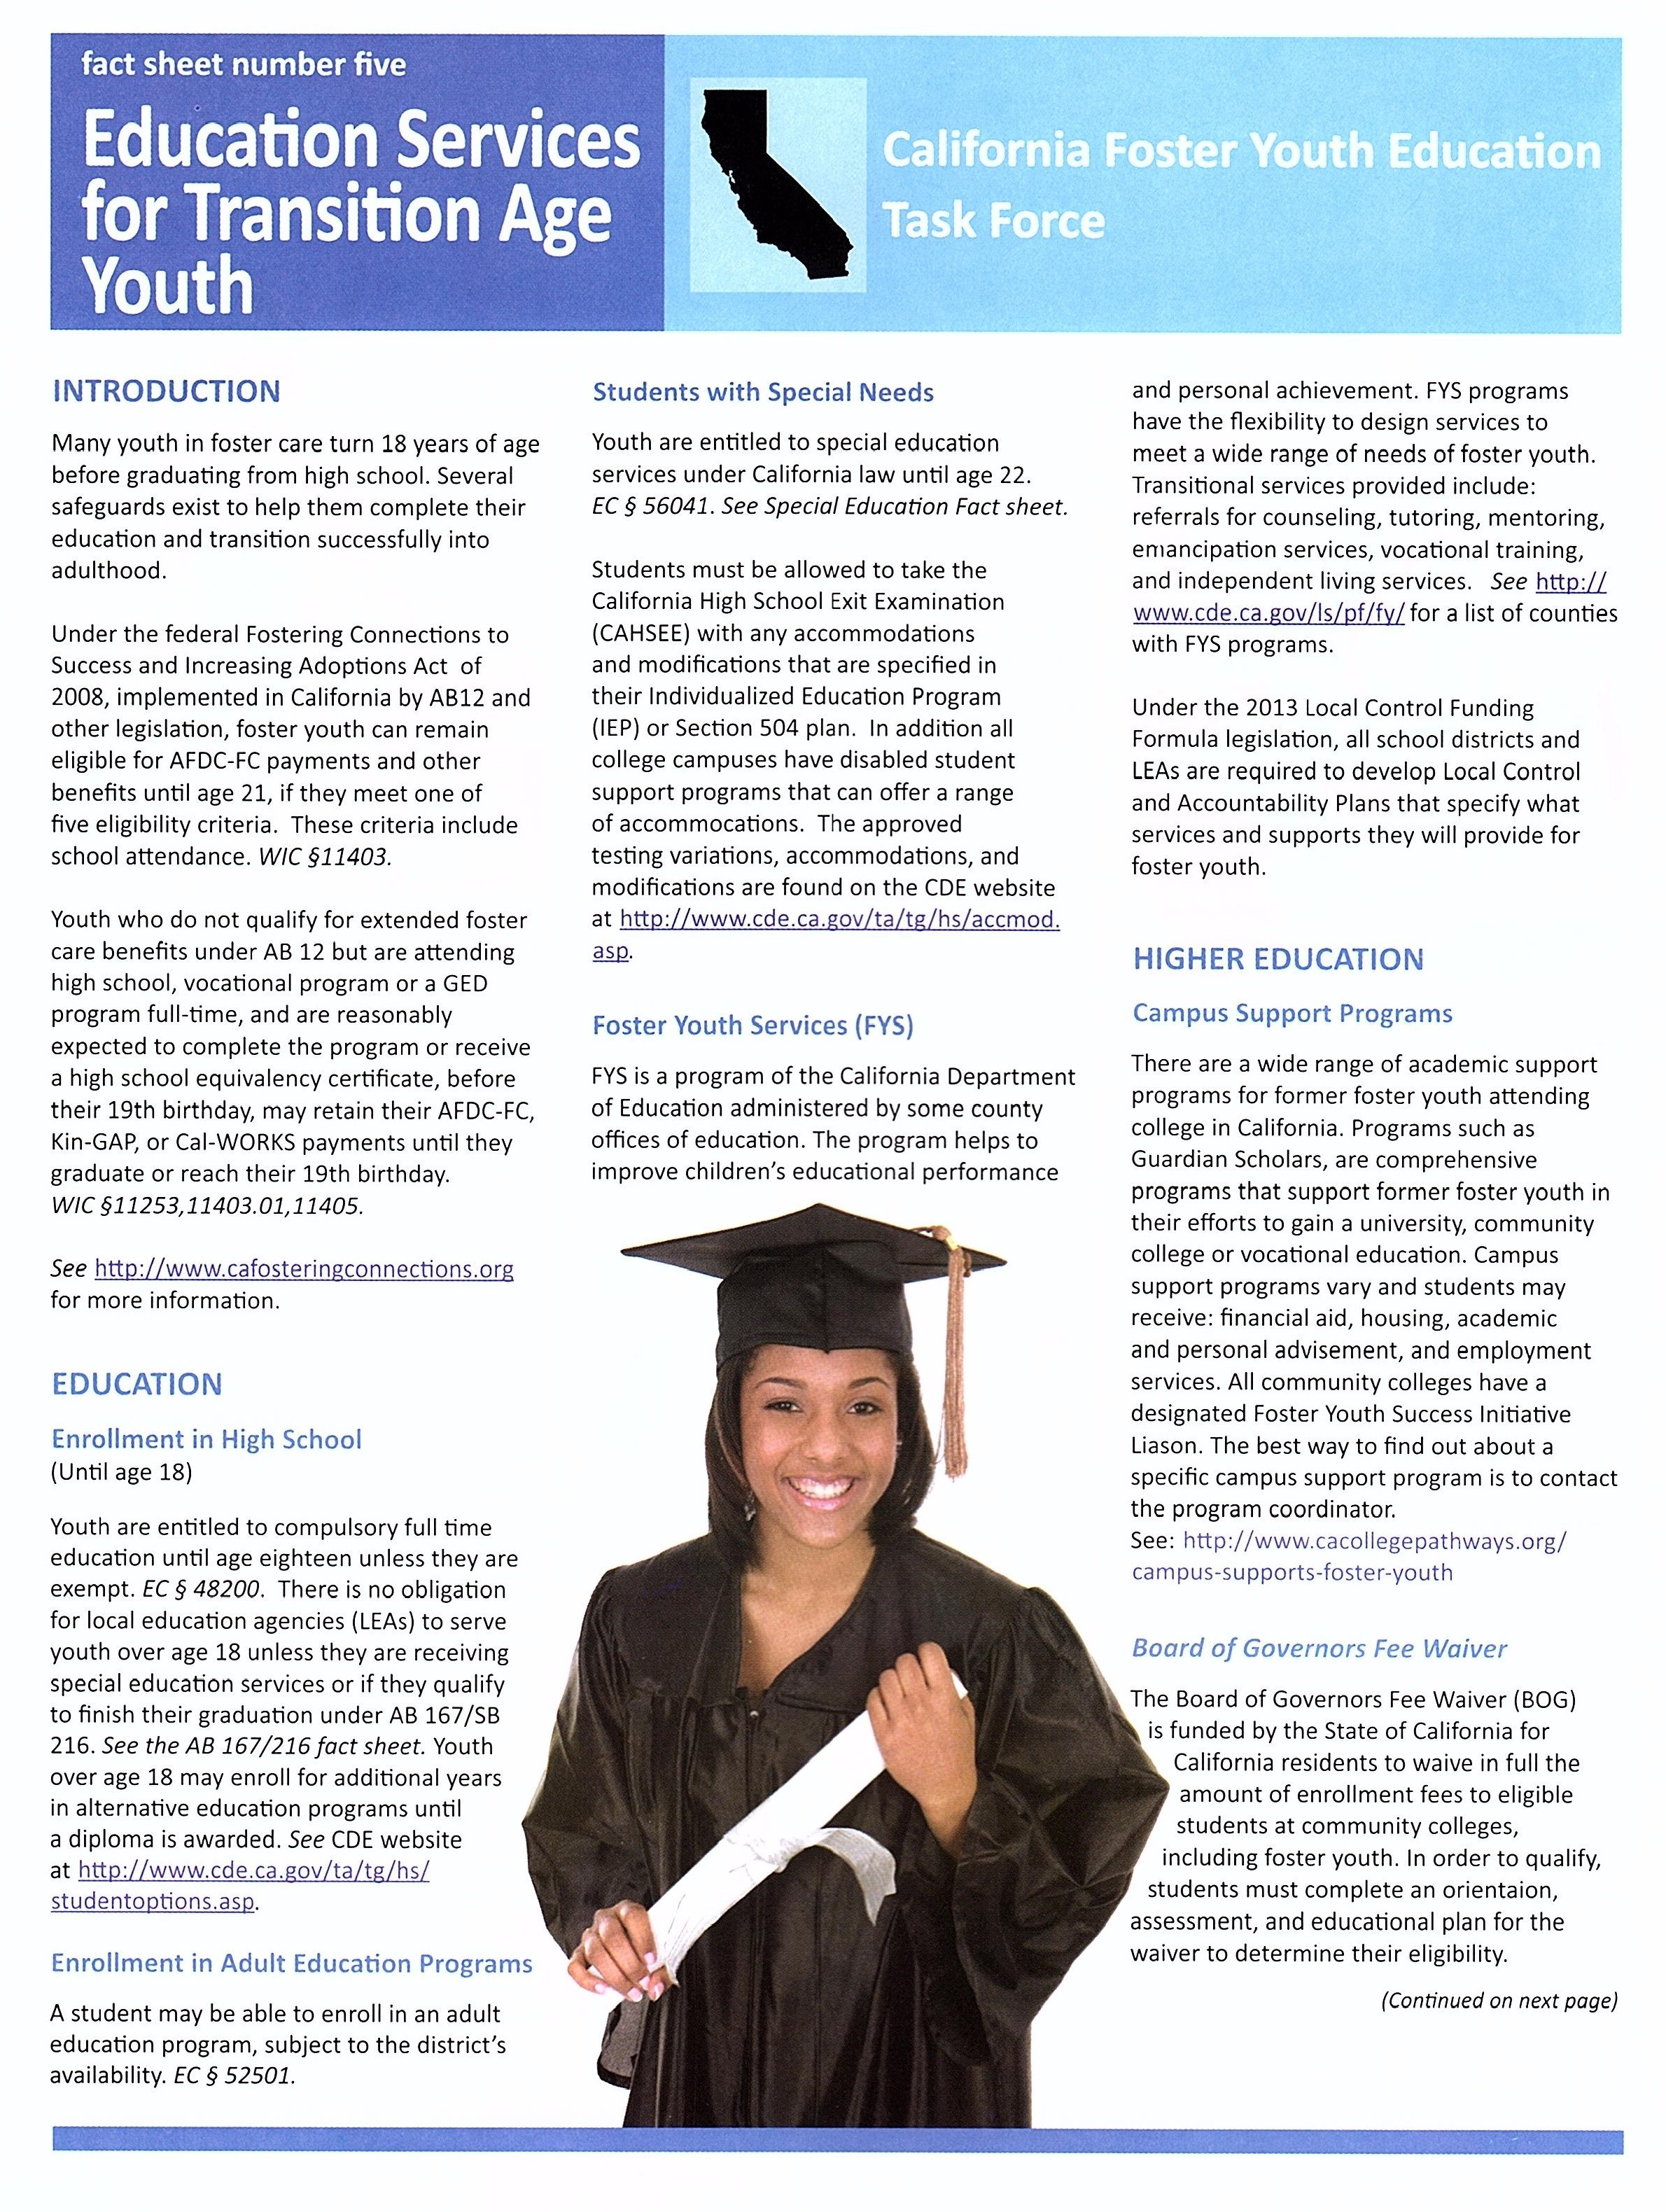 Fact sheet for Educational Services for Transition Age Youth